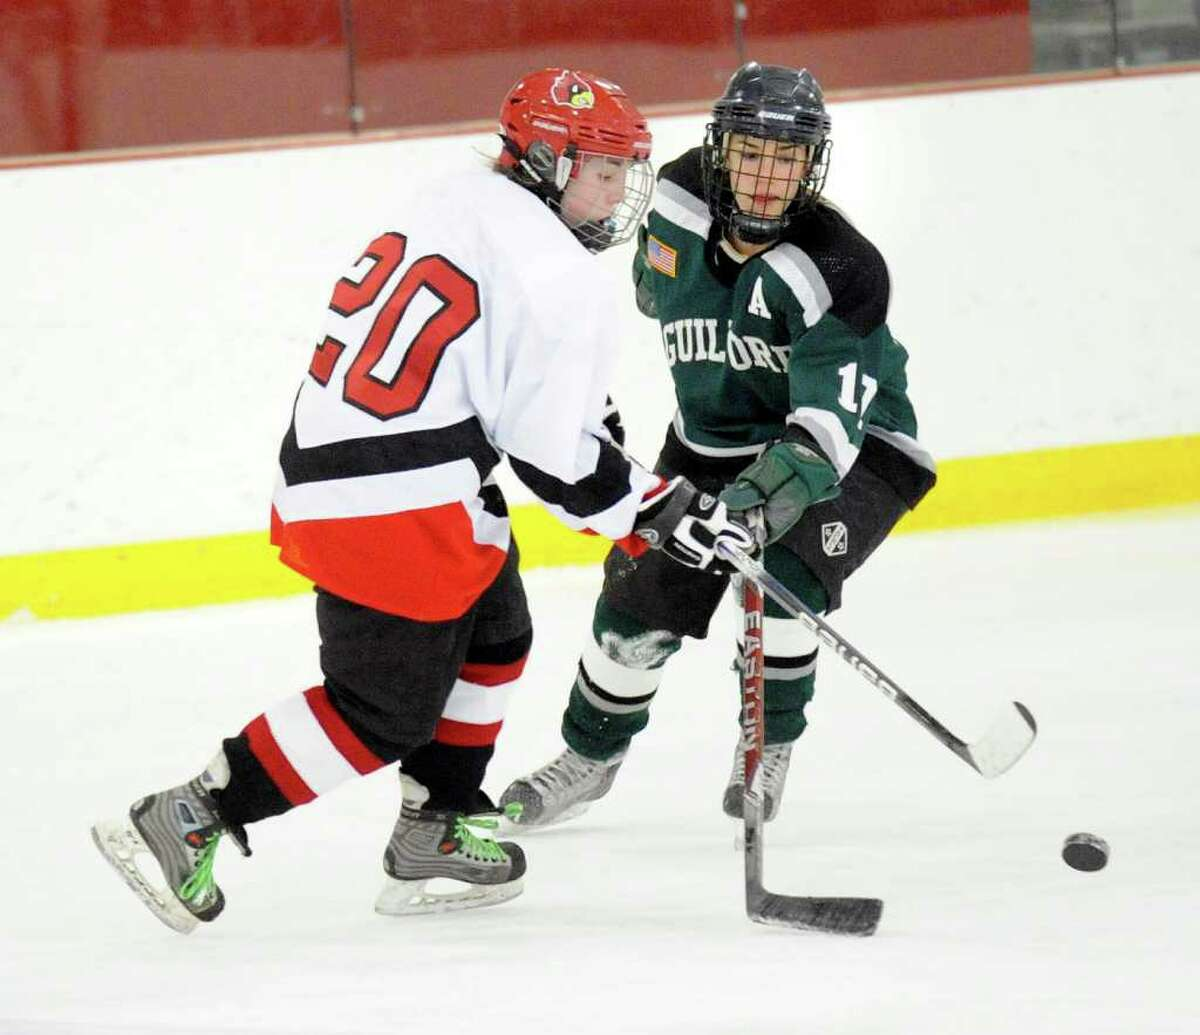 Erin Ferguson, # 20 of Greenwich High School, left, shoots while being covered by Ali Putney, # 17 of Guilford High School, right, during girls ice hockey game between Greenwich High School and Guilford High School at Hamill Rink, Byram, Tuesday, Feb. 15, 2011.